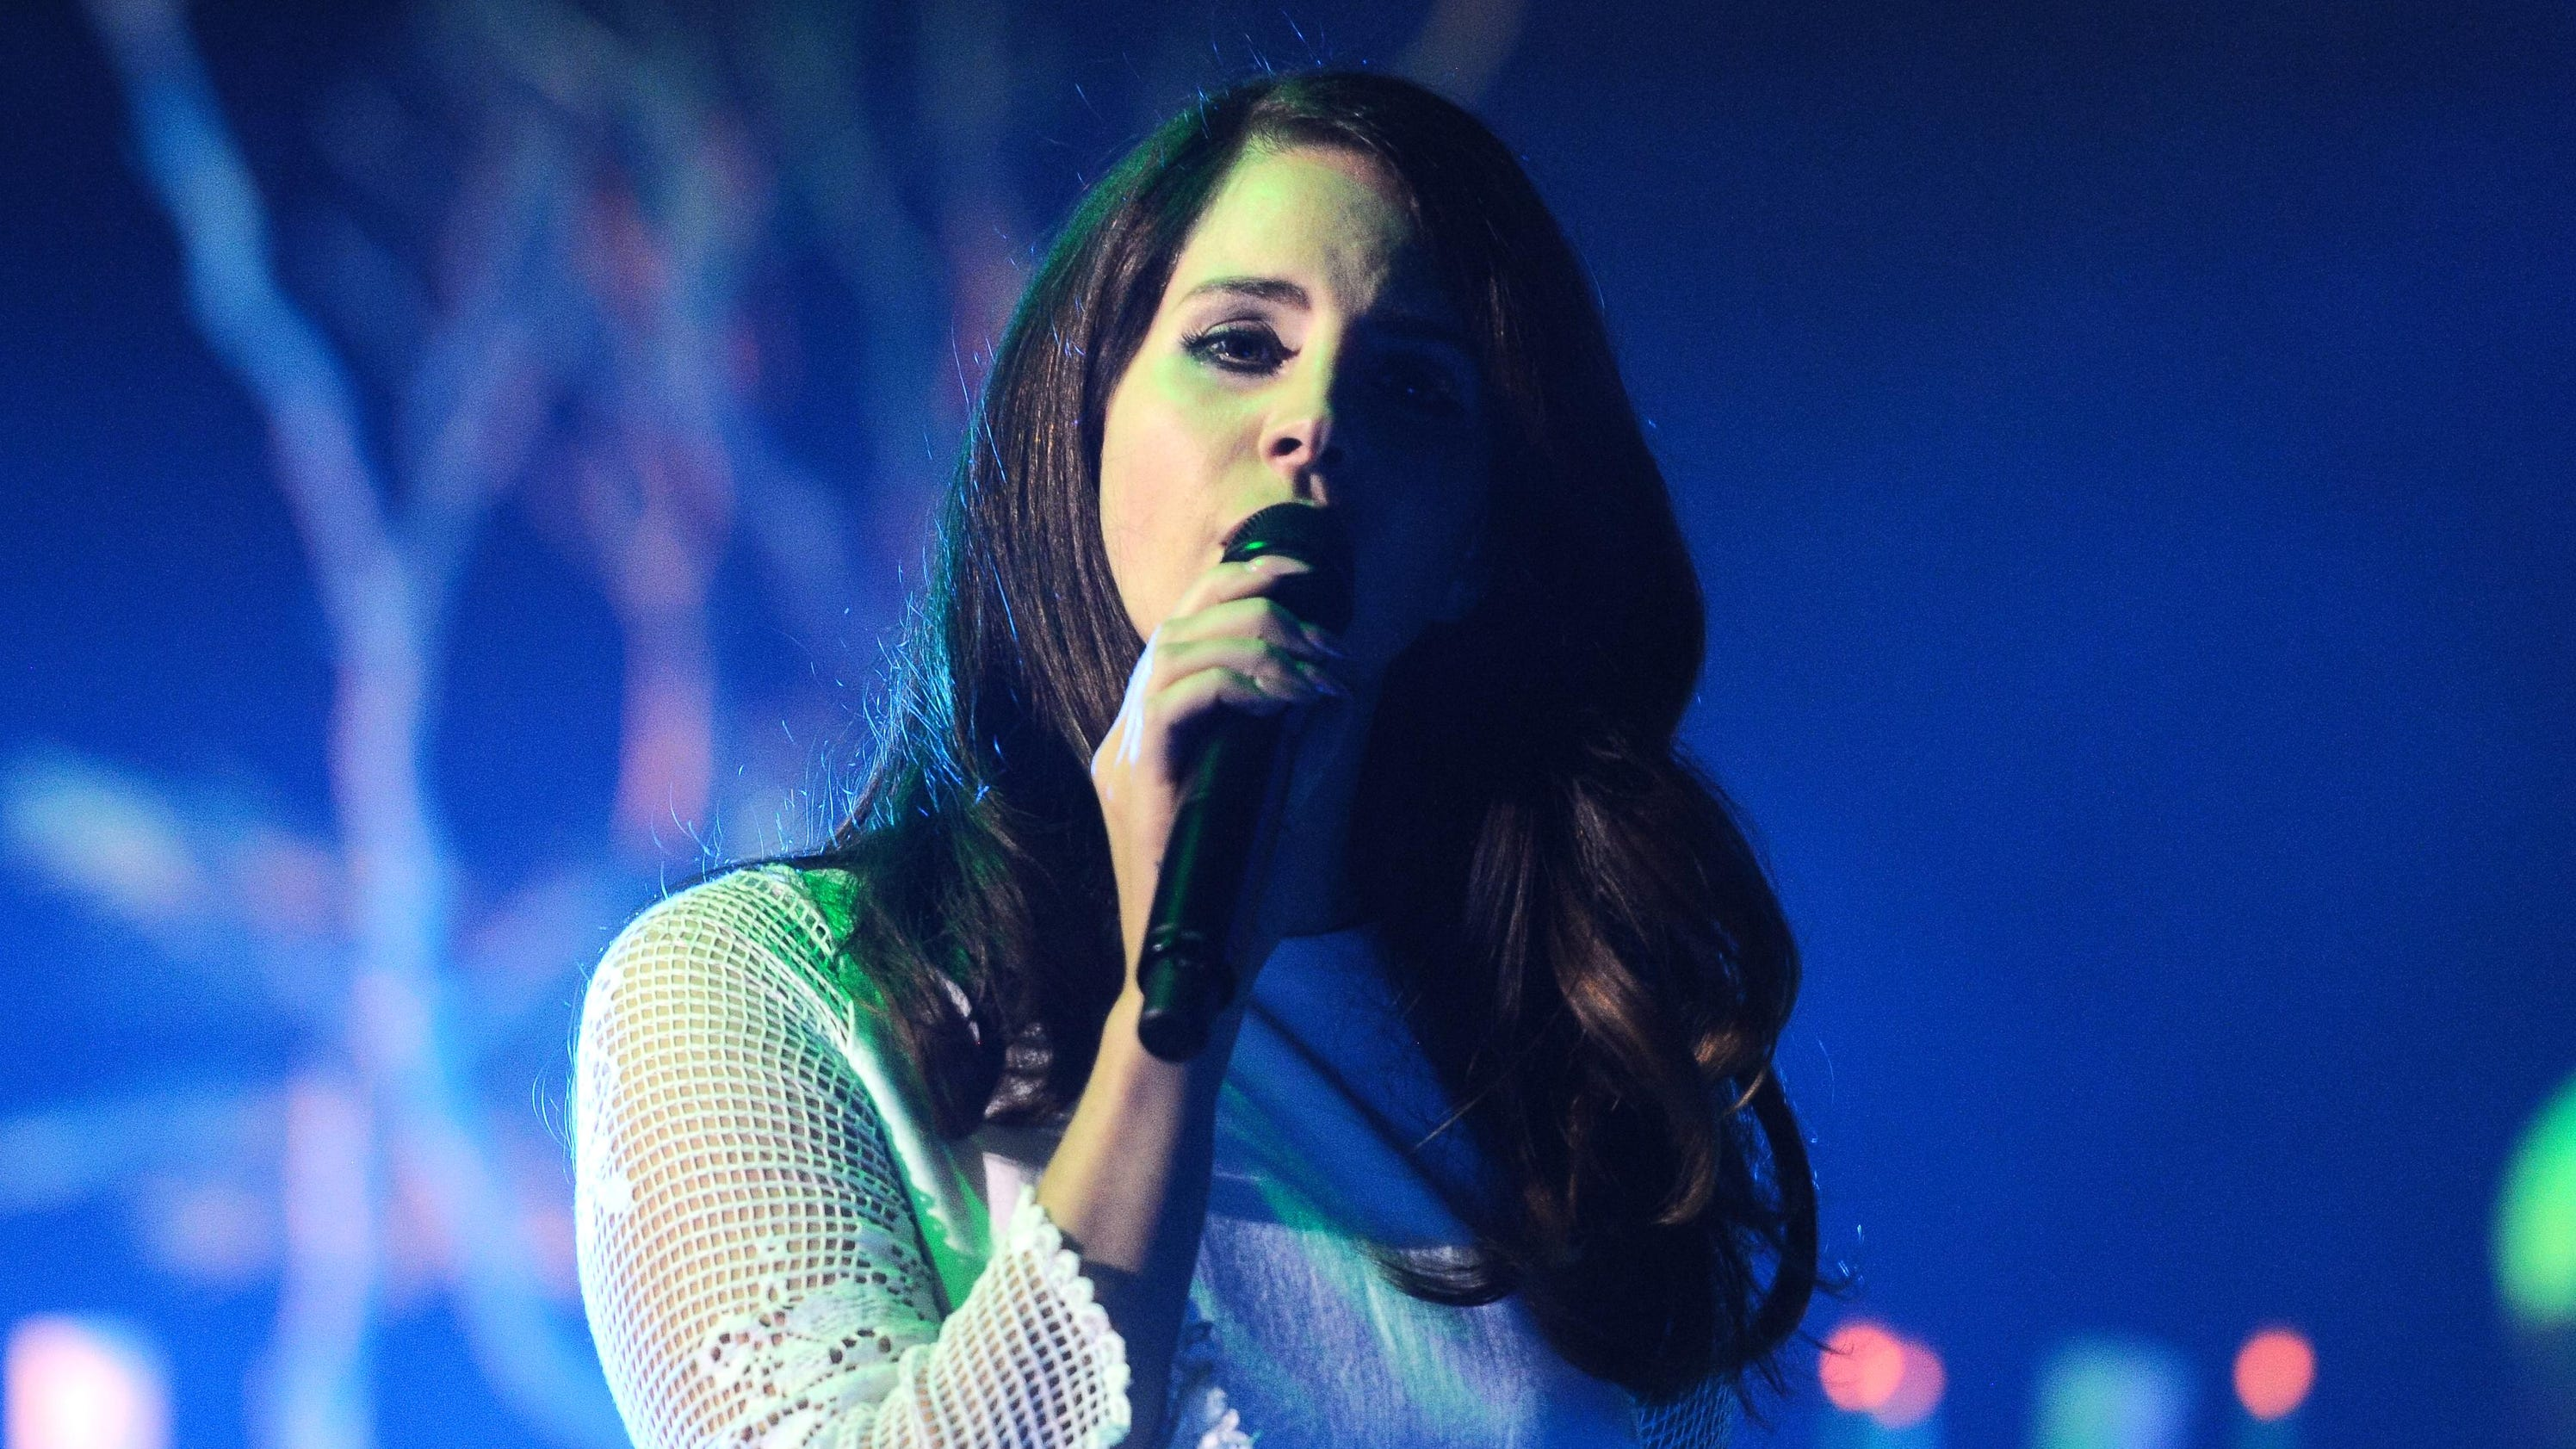 Lana del rey brings her lust for life to little caesars kristyandbryce Images